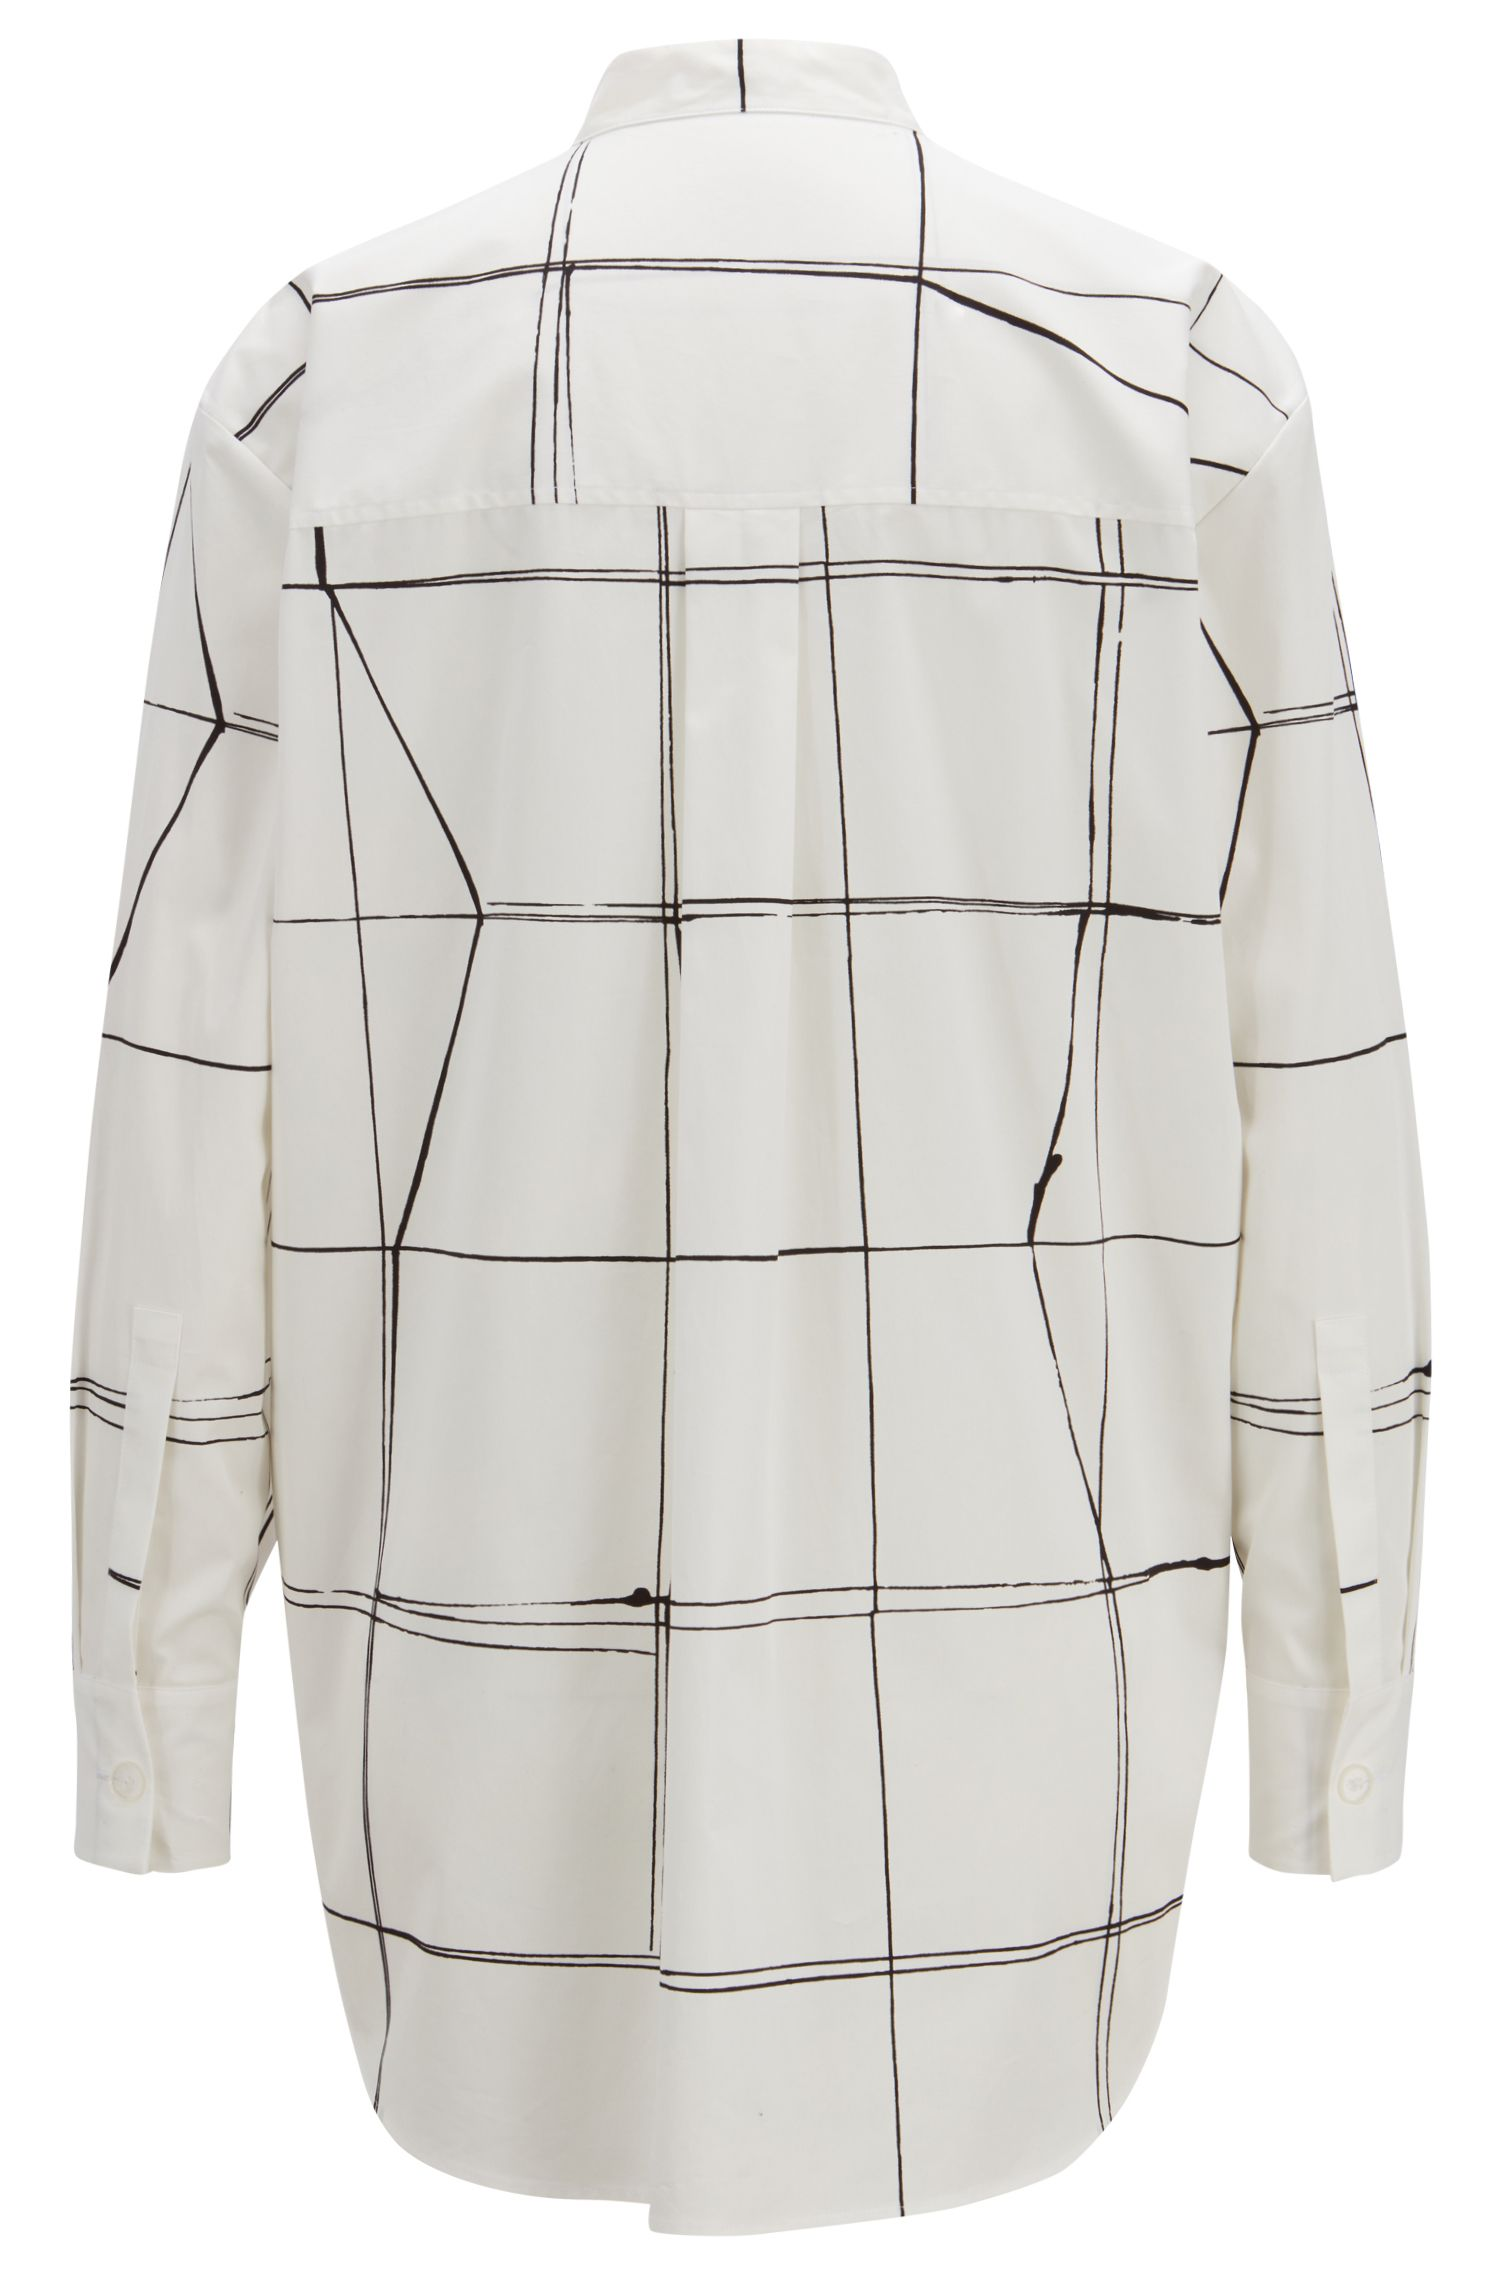 Oversized-fit blouse with abstract line print, Patterned